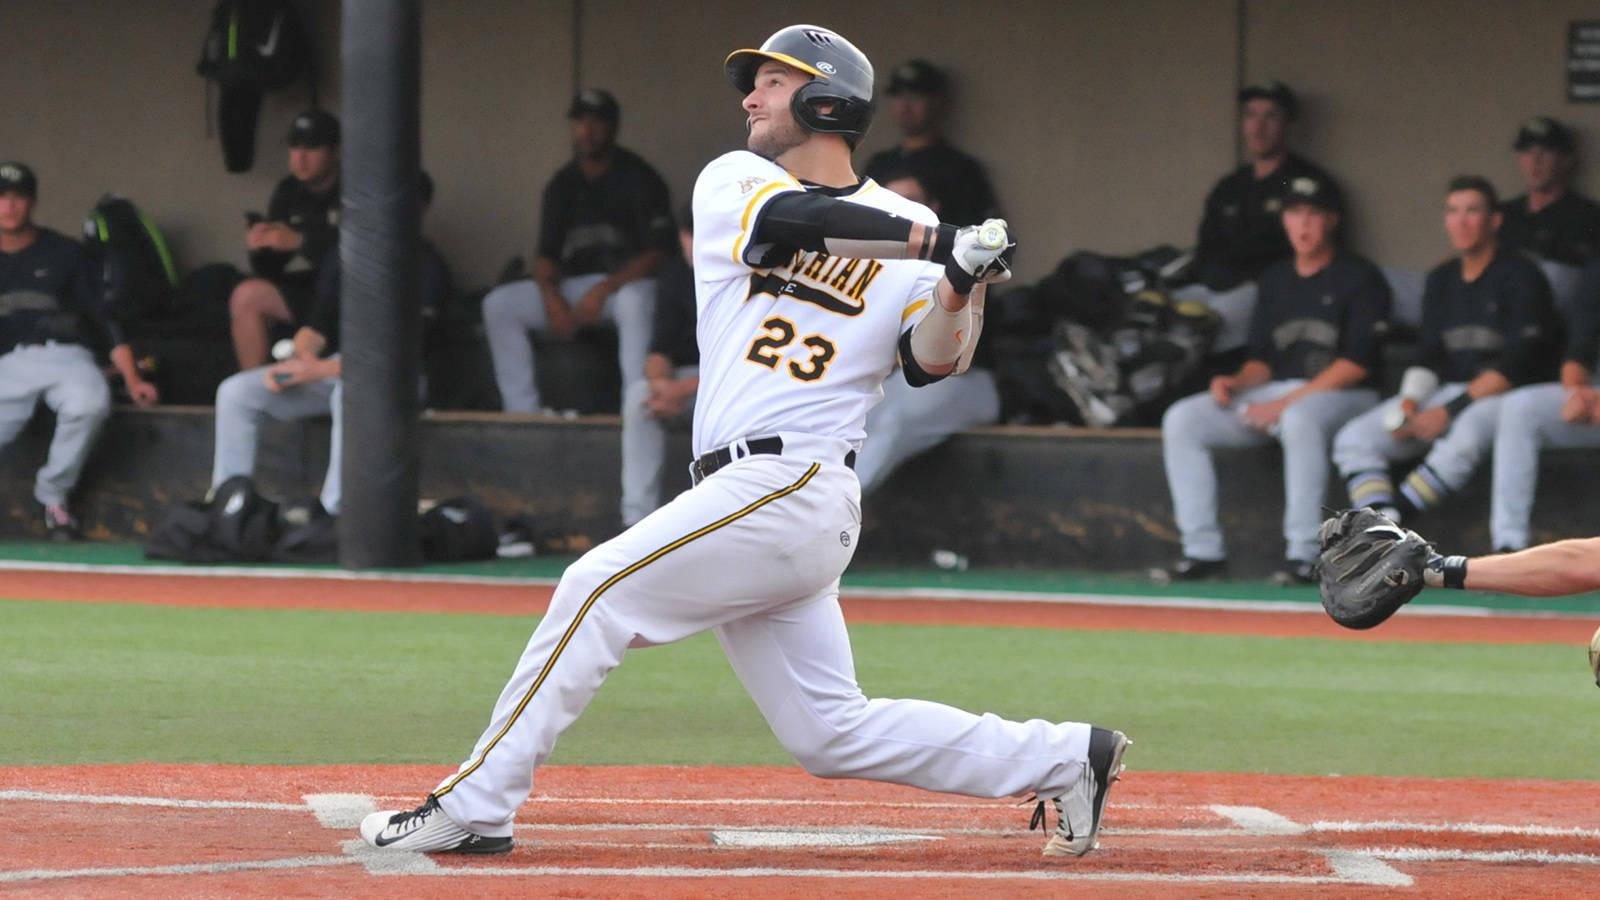 Senior+right-handed+pitcher+and+infielder+Caleb+McCann+follows+through+his+swing.+Courtesy+of+DC+Mayo%3B+App+State+athletics